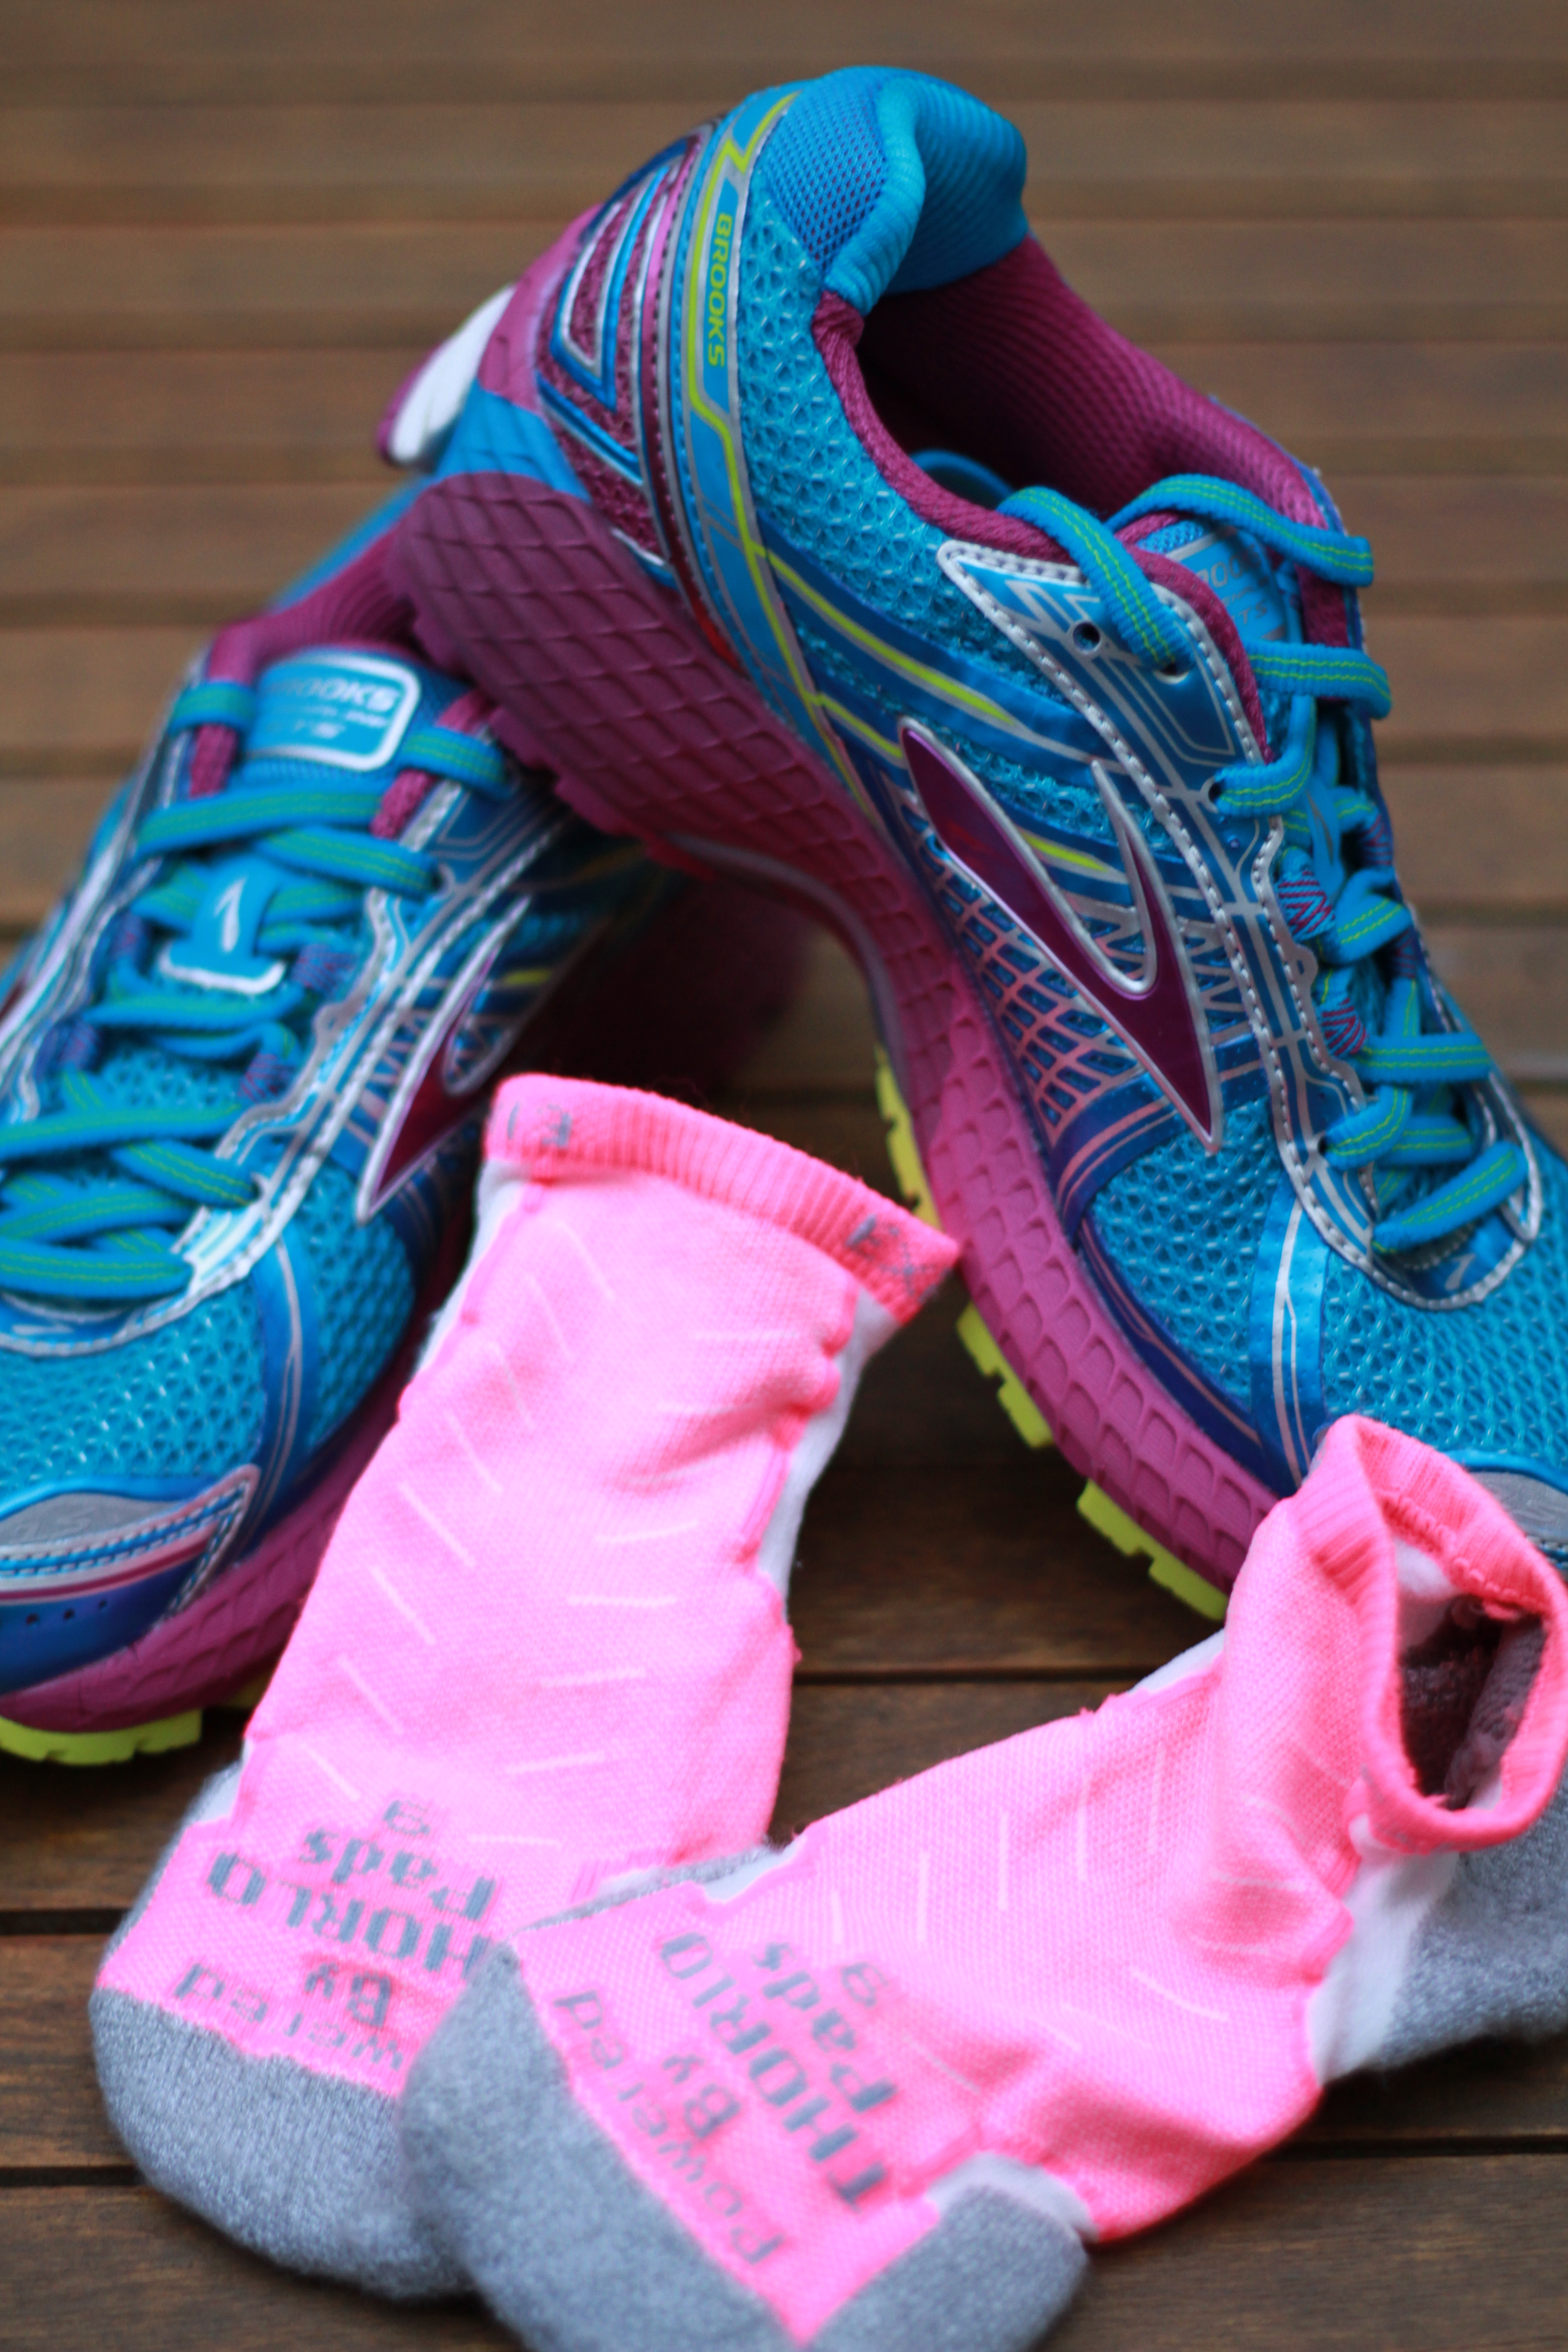 The Ordinary Girls Pre Race Guide to a Half Marathon